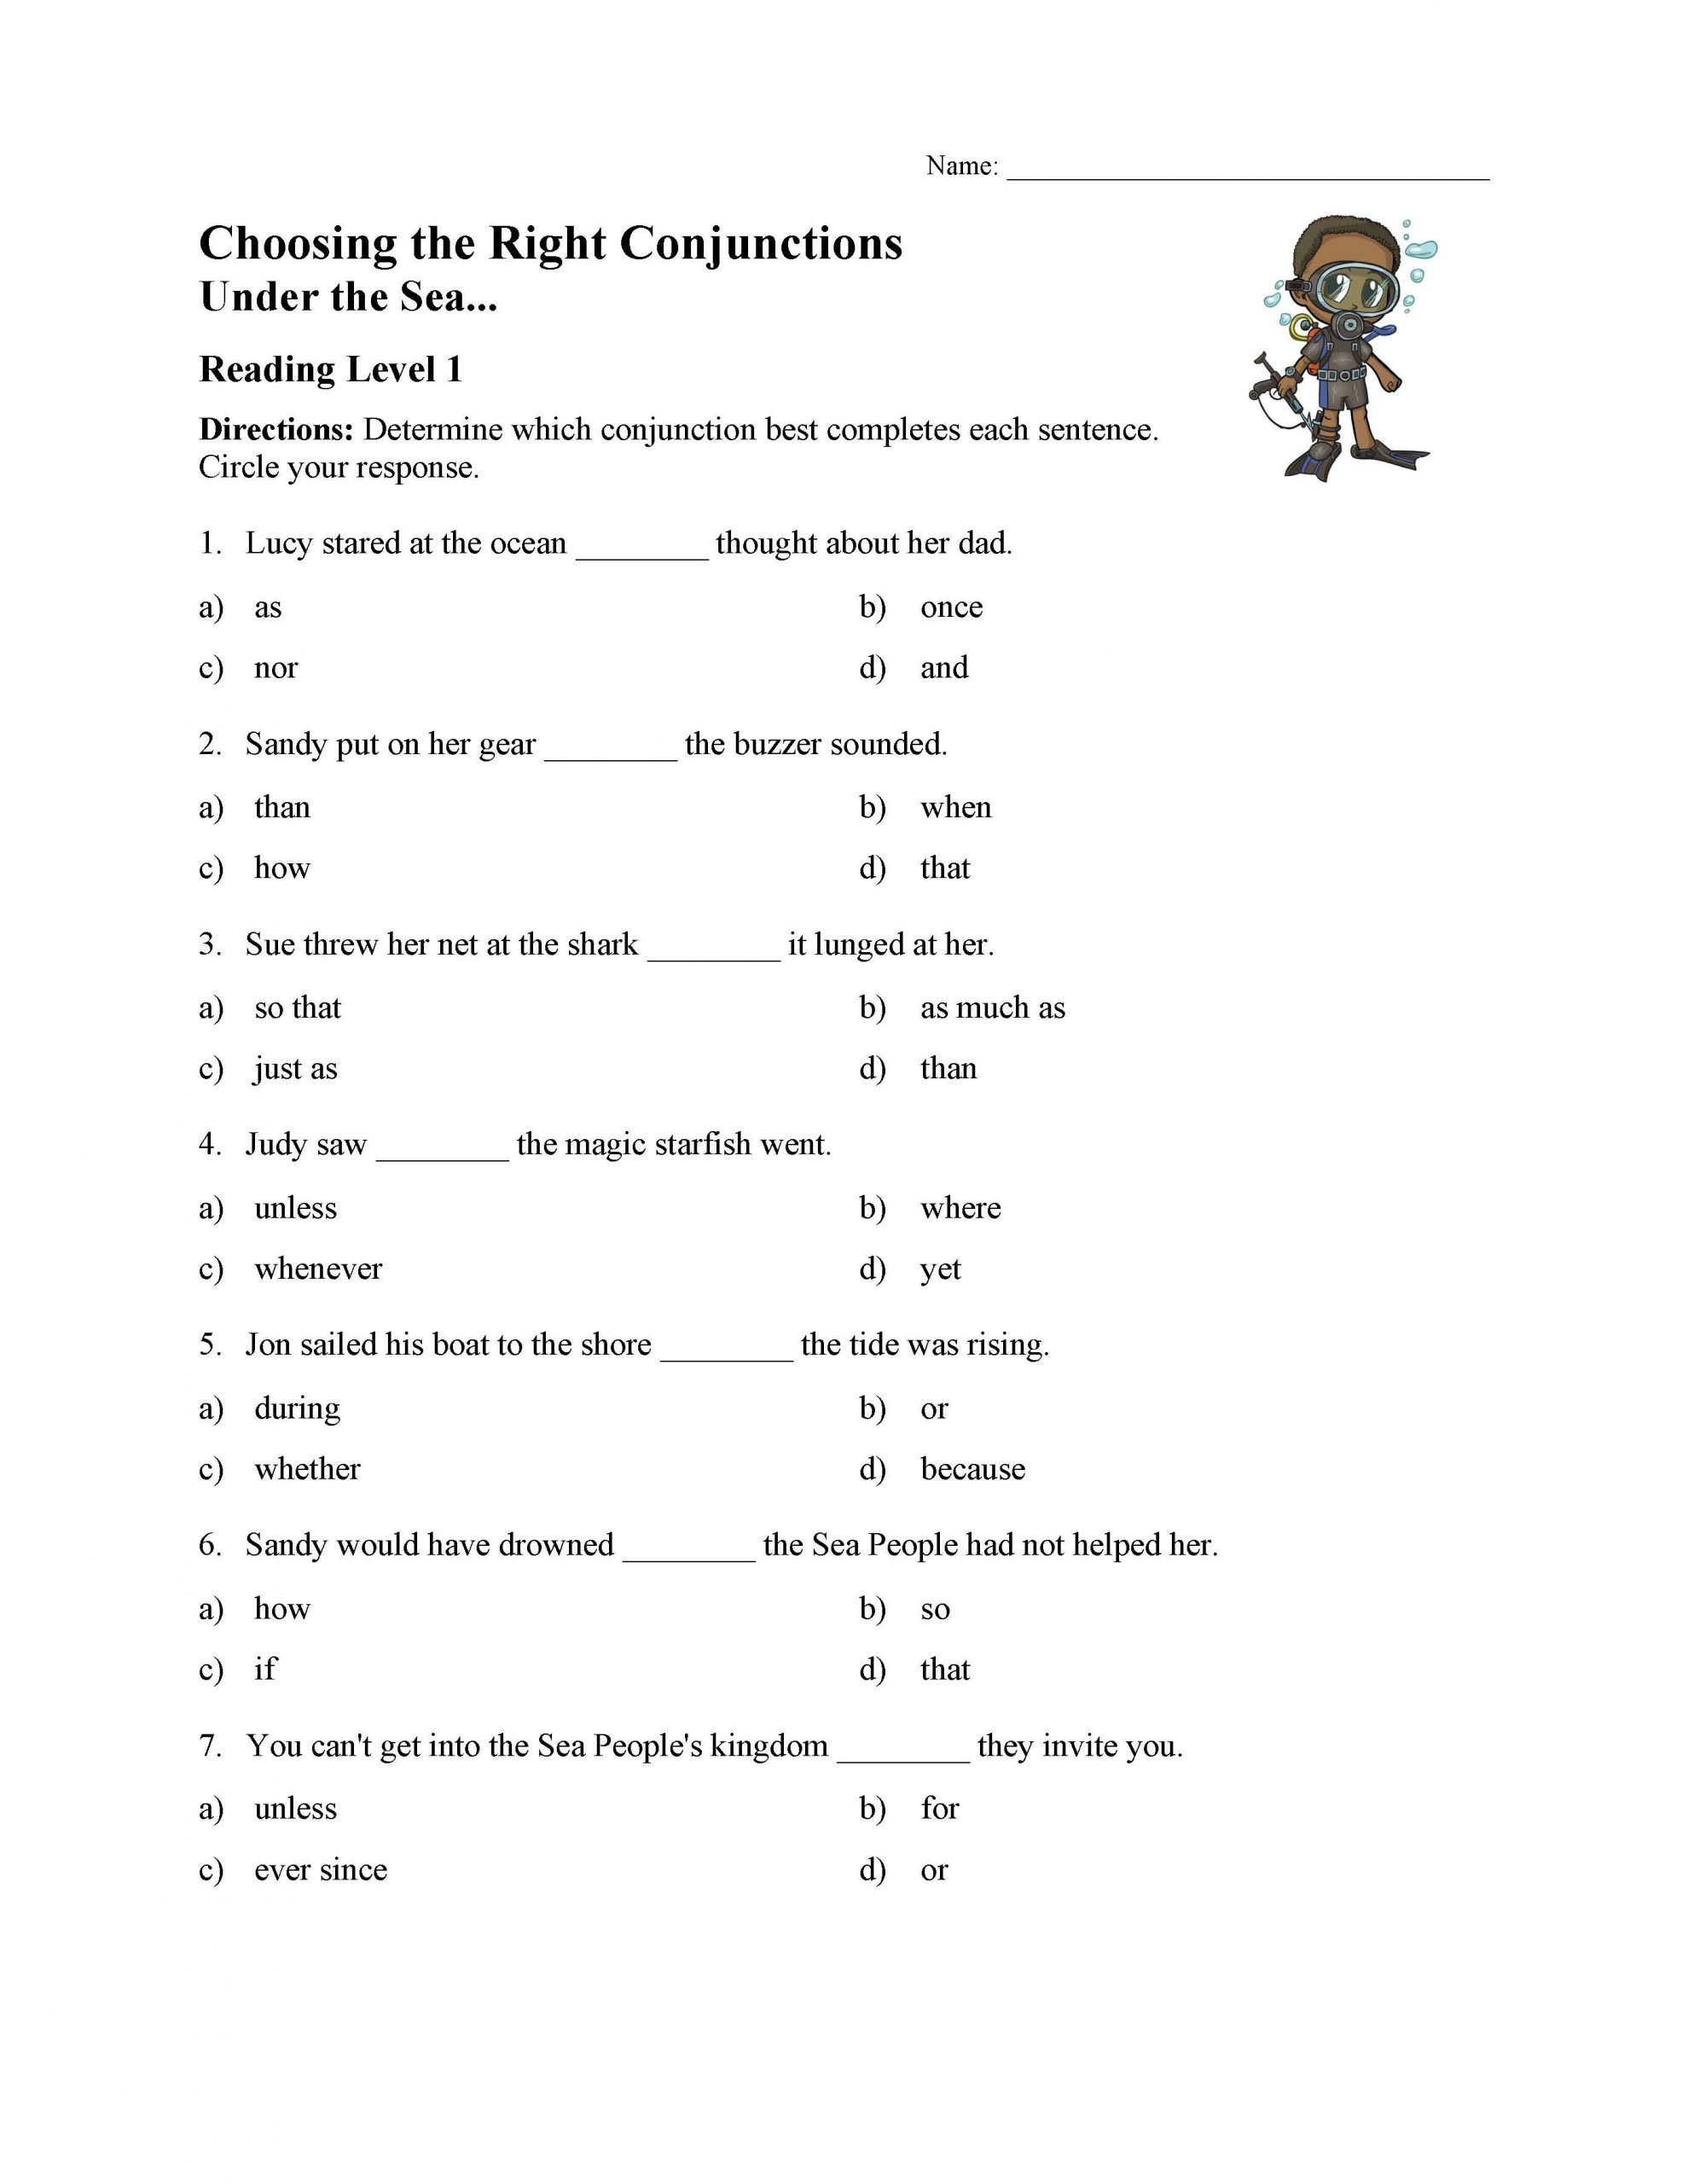 Conjunctions Worksheet 5th Grade Choosing the Right Conjunction Worksheet Reading Level 1